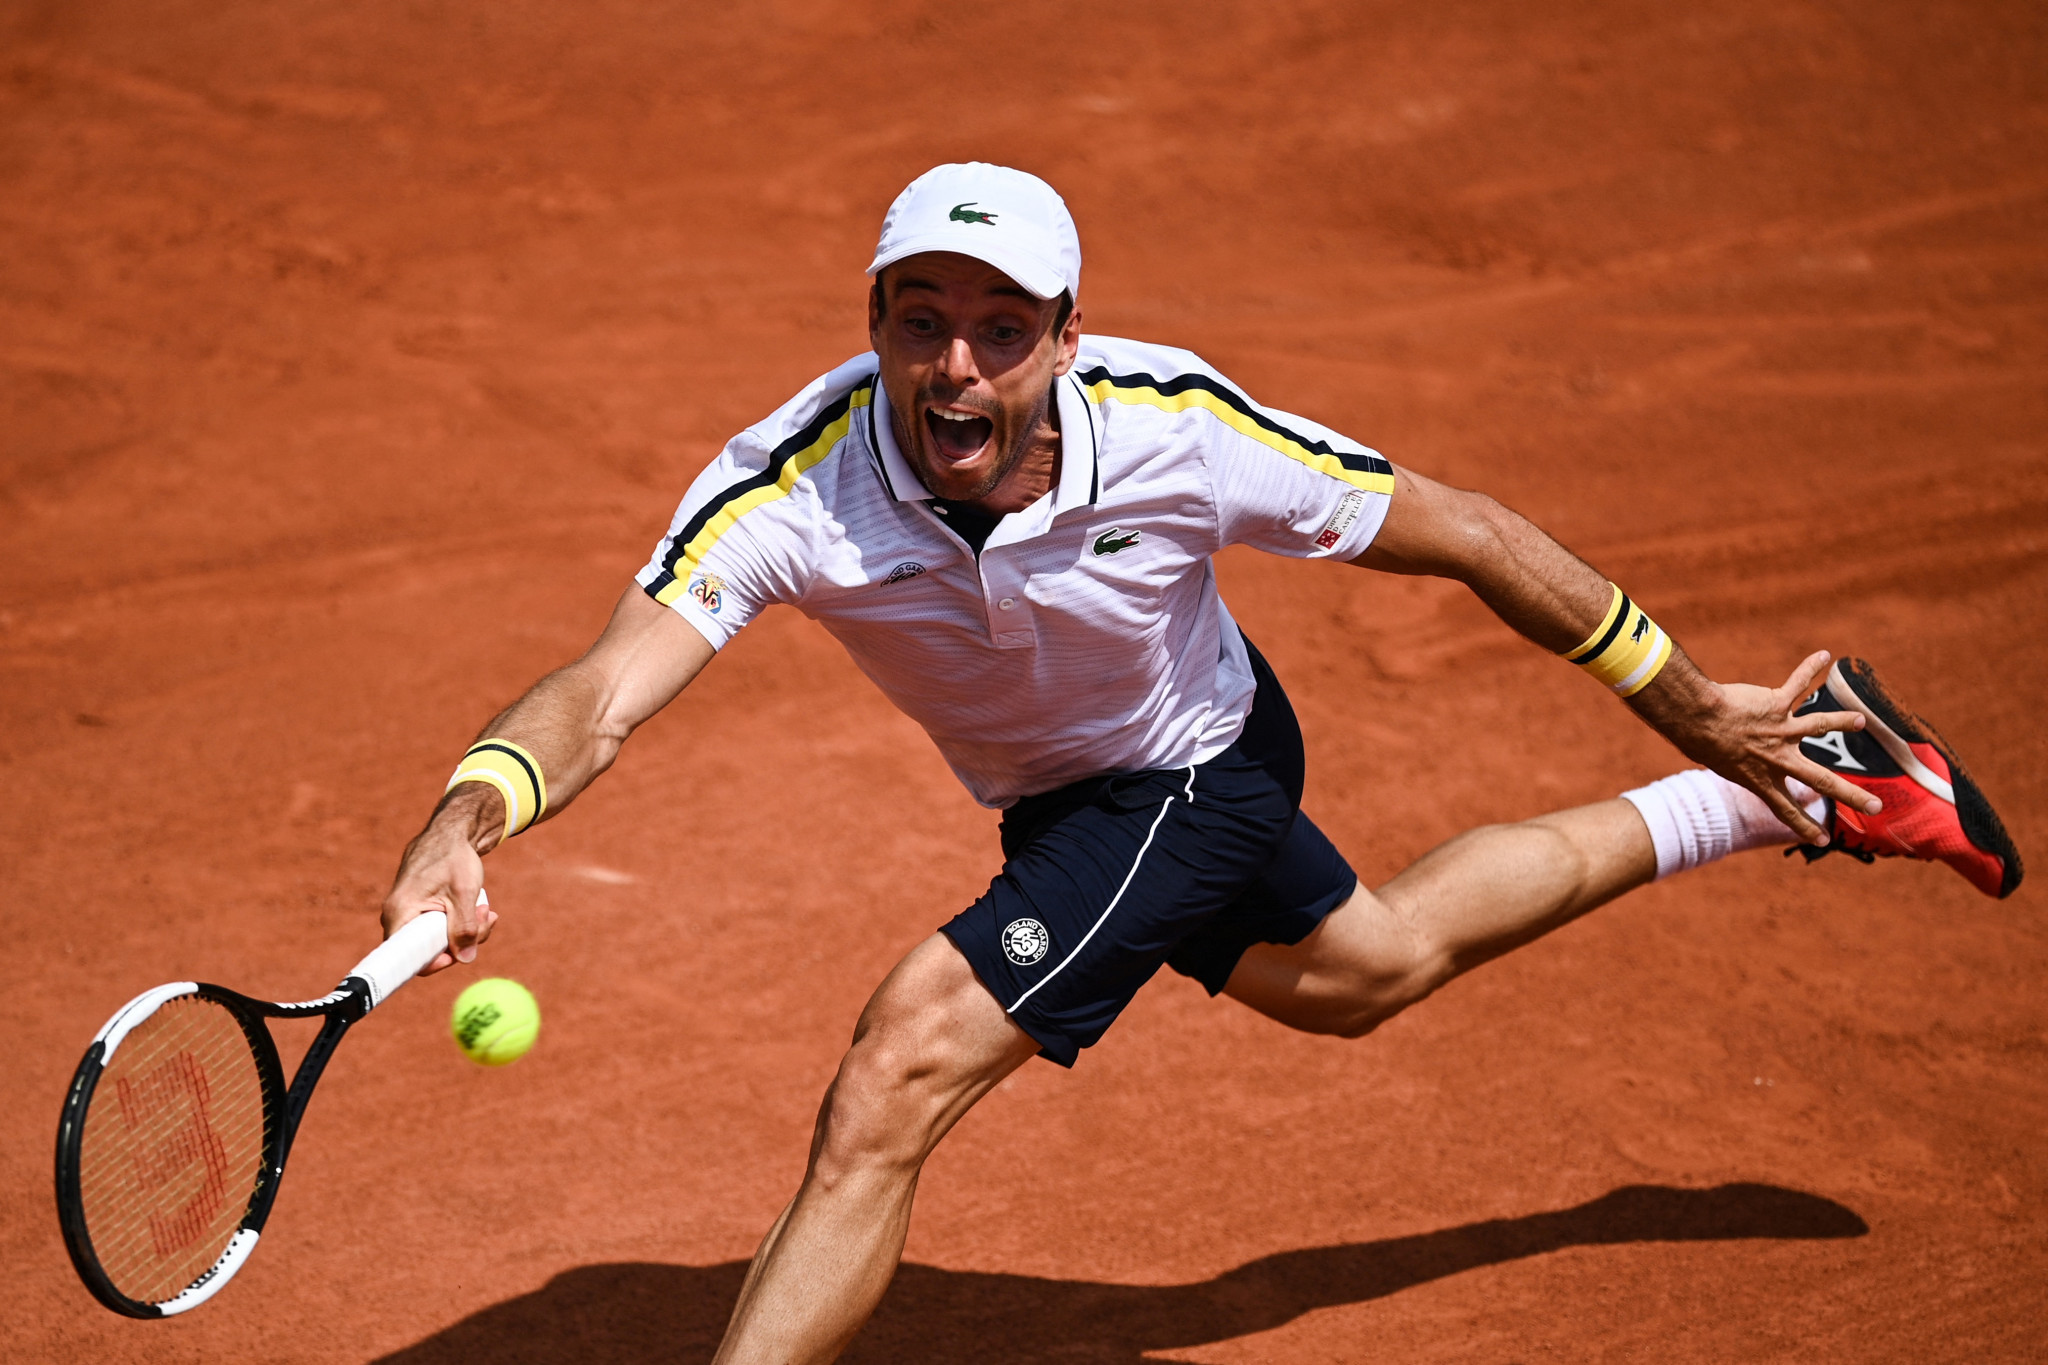 Roberto Bautista Agut suffered a four-set defeat to Henri Laaksonen ©Getty Images